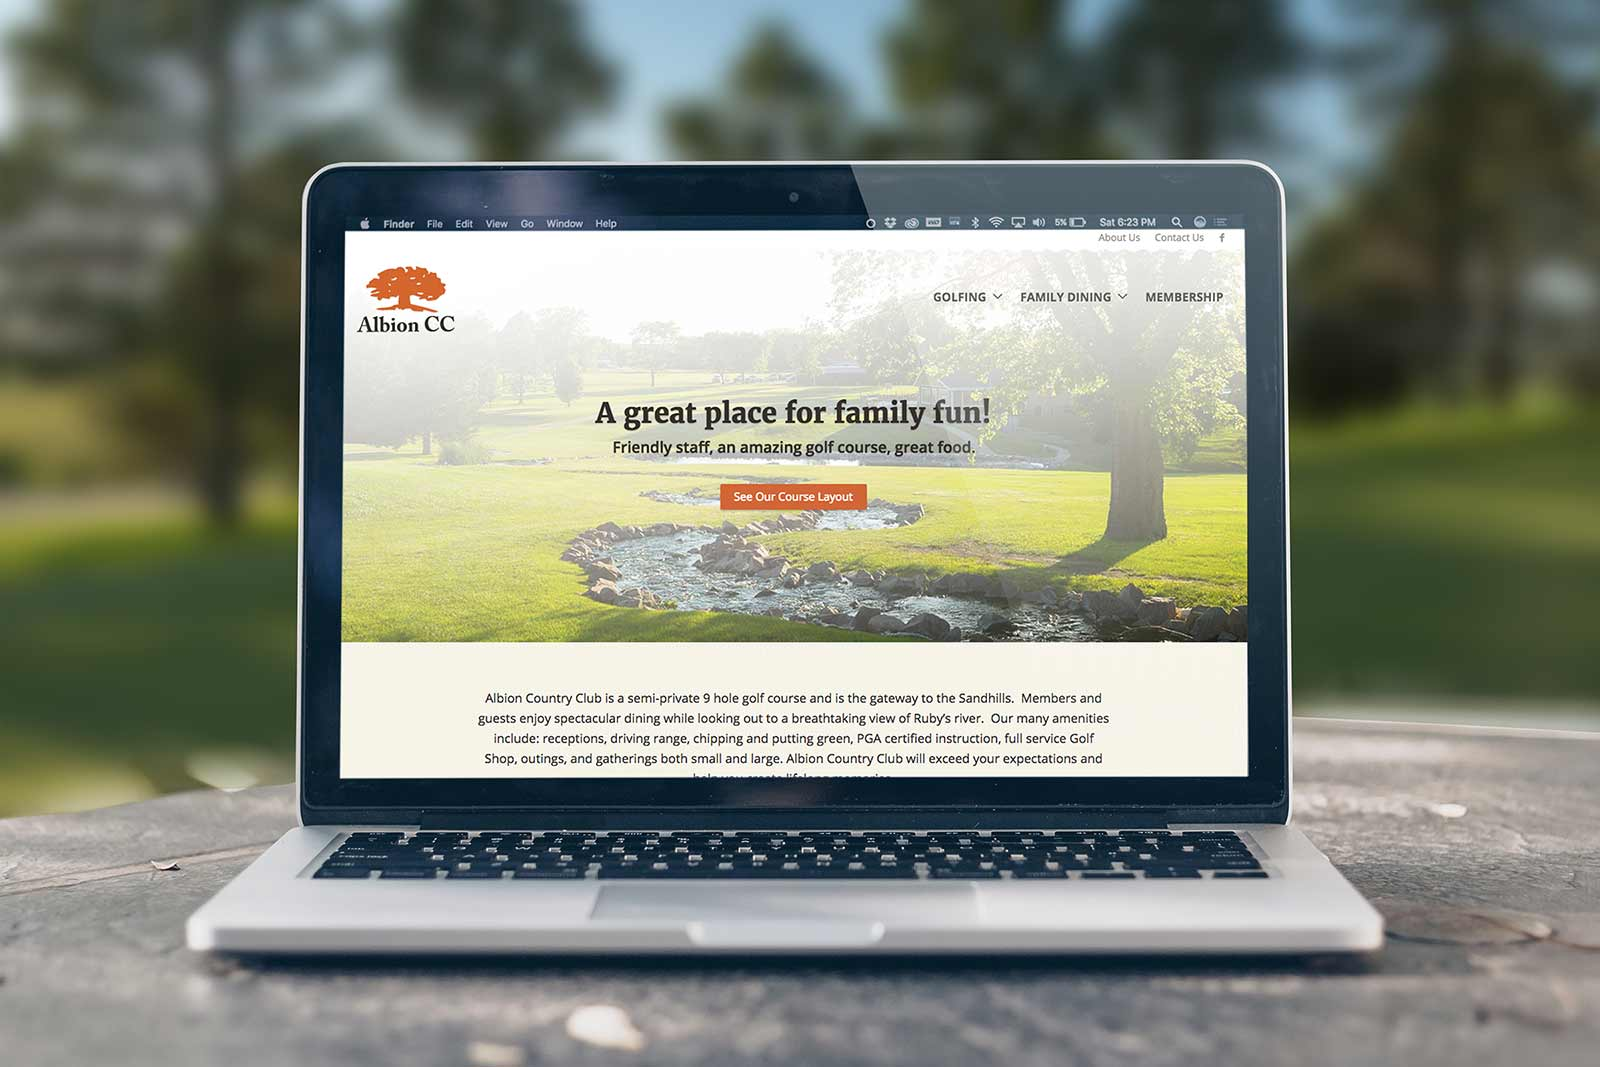 Albion Country Club - Home page shown on Macbook